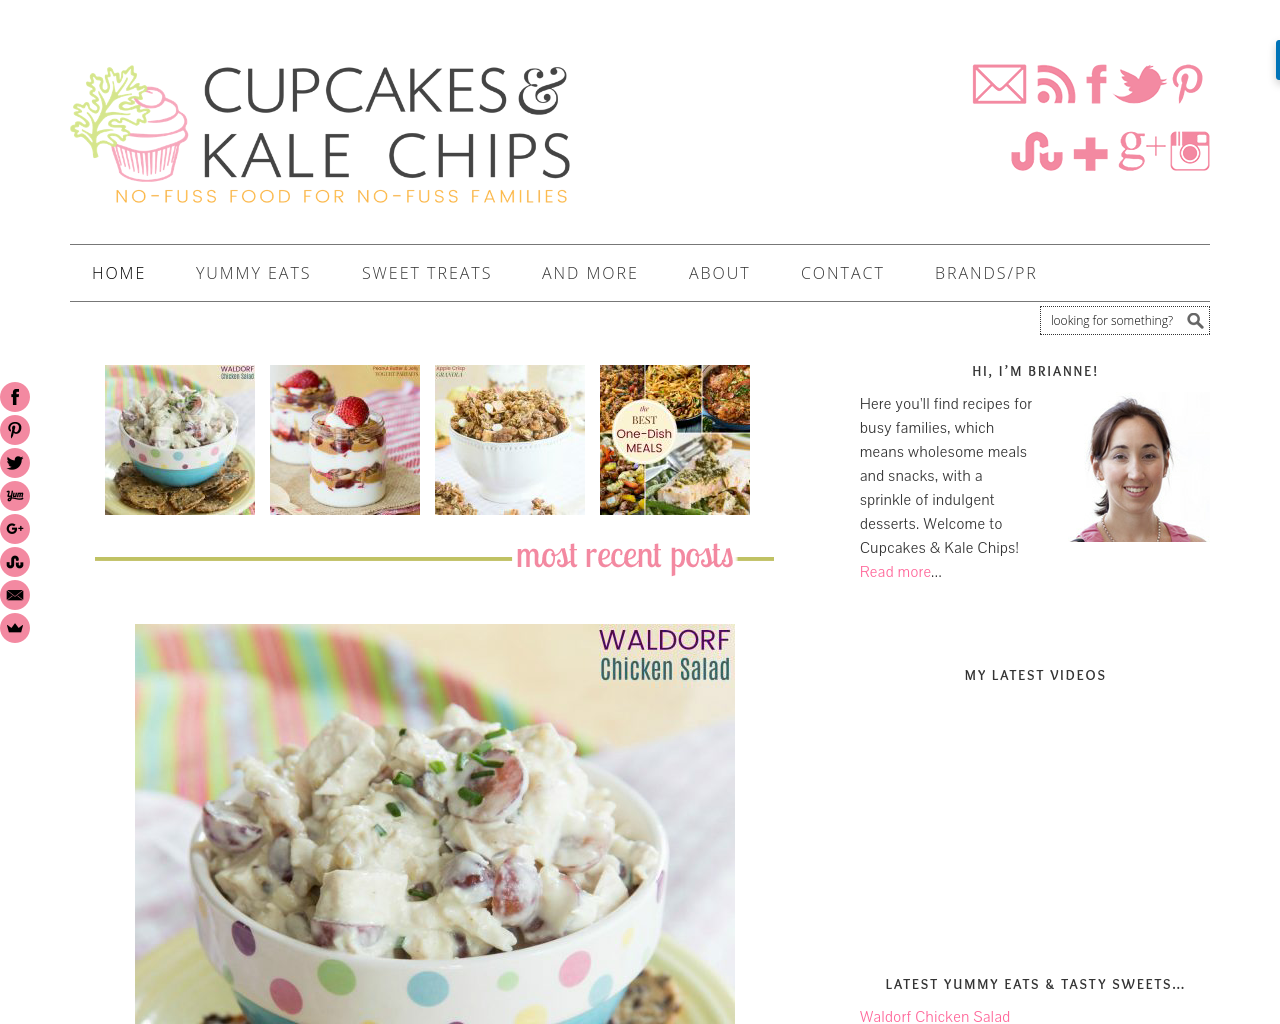 Cupcakes-And-Kale-Chips-Advertising-Reviews-Pricing